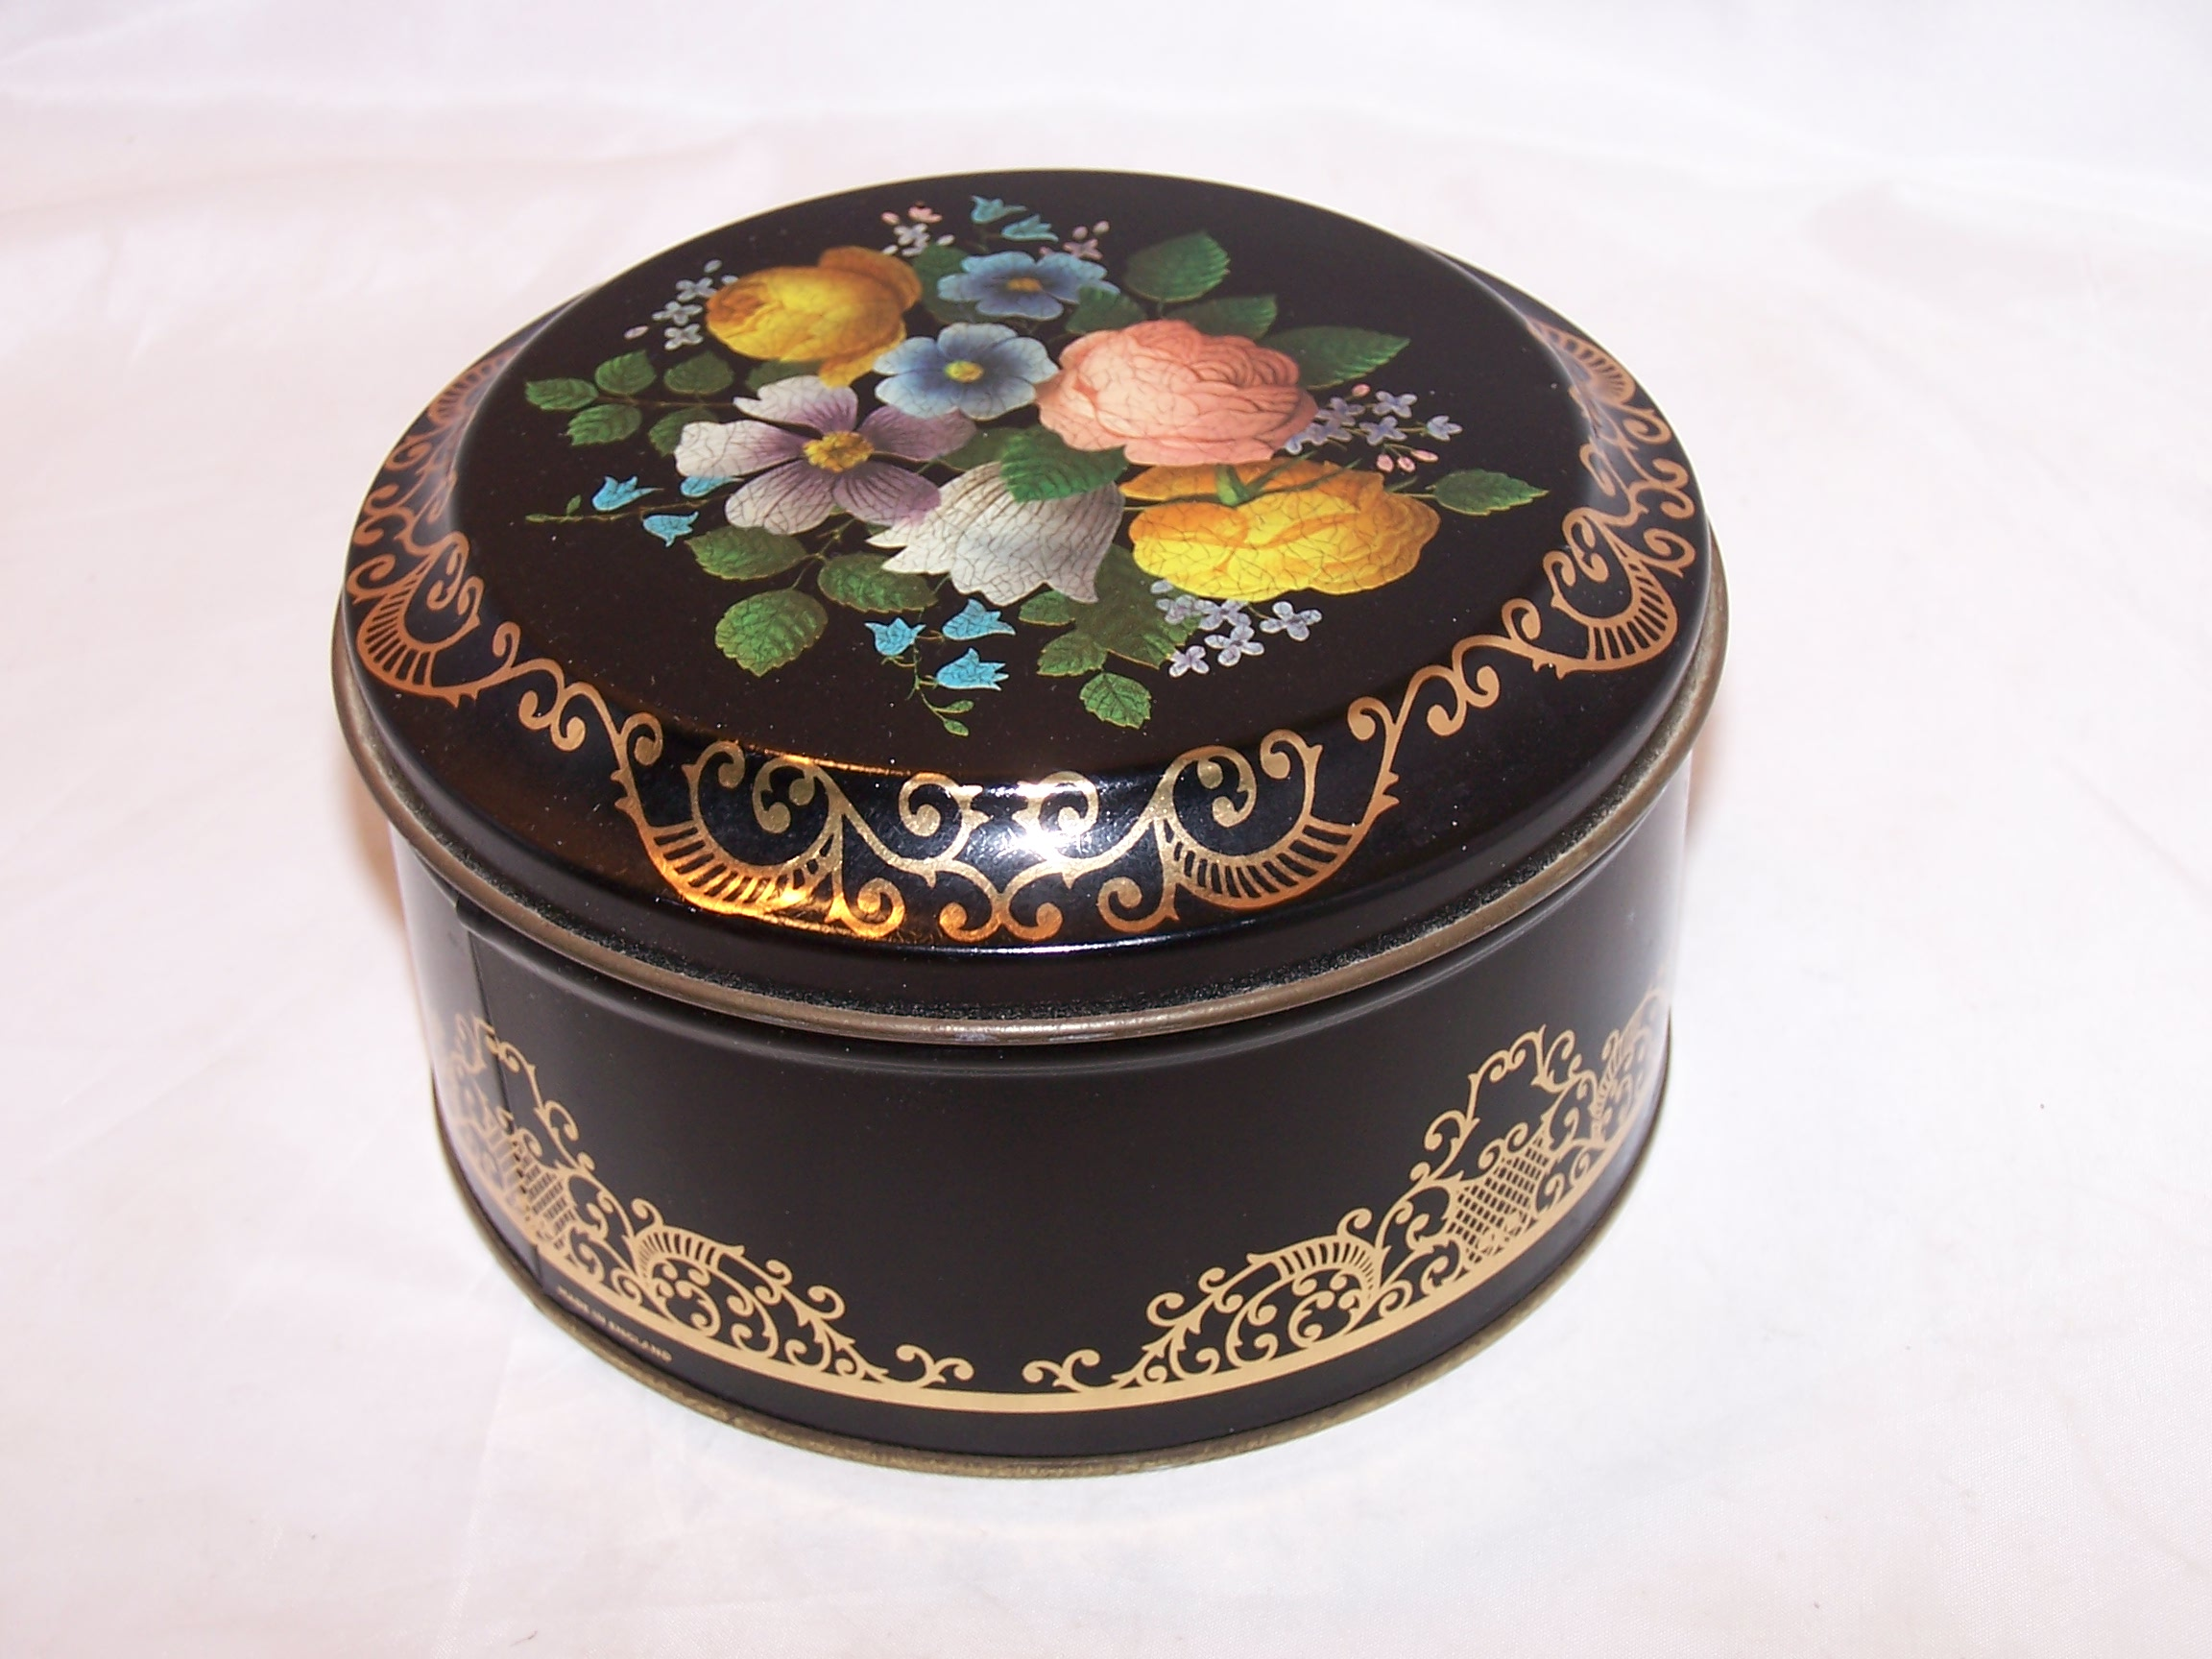 Image 2 of Flowers, Gold Scrollwork Tin Box, England